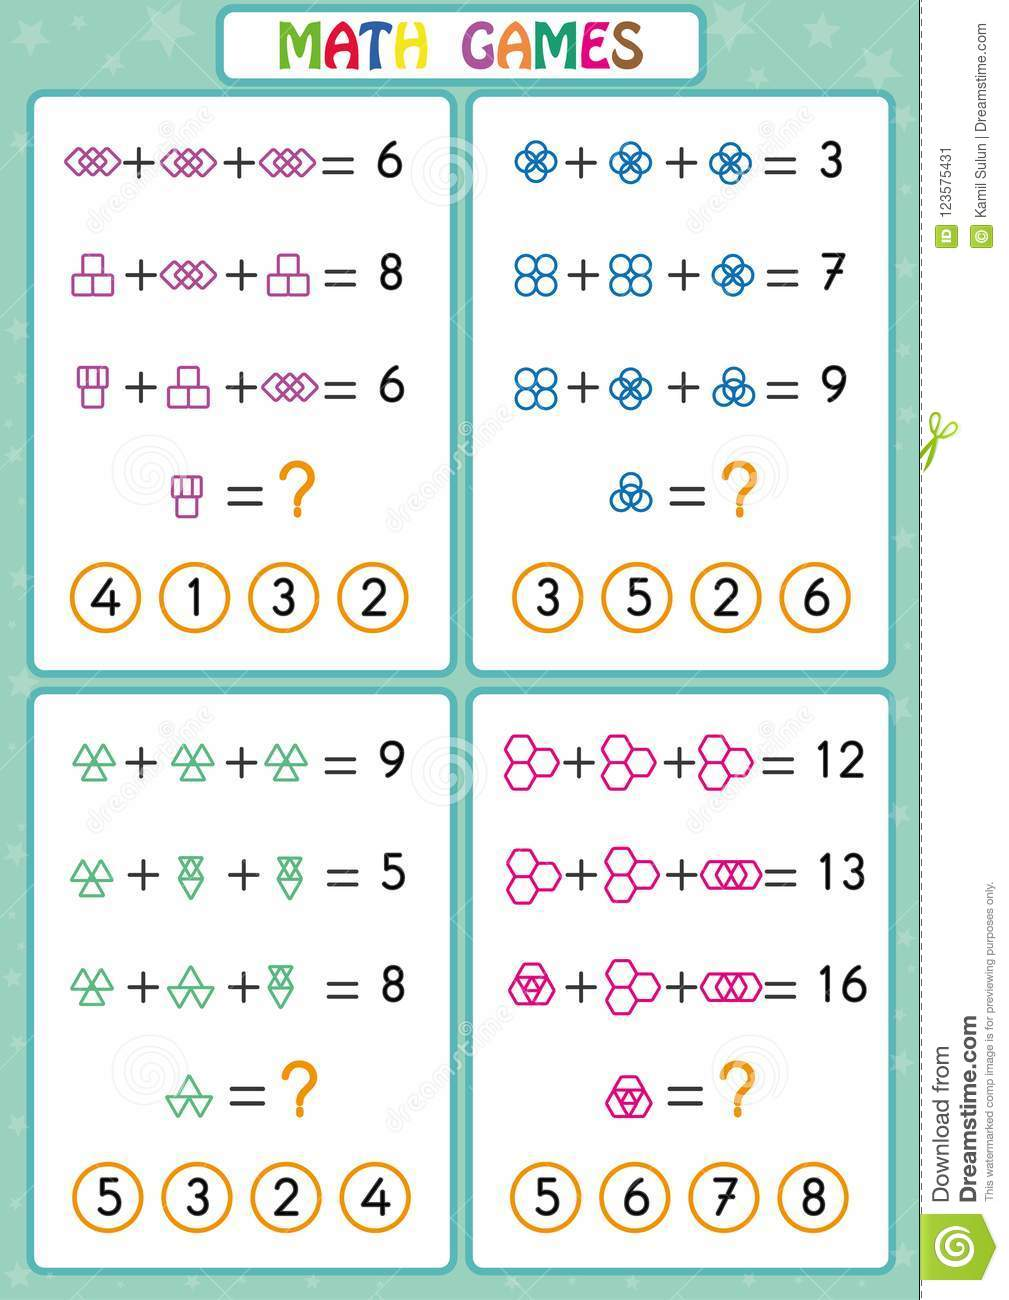 Mathematics Educational Game For Kids, Fun Worksheets For ...